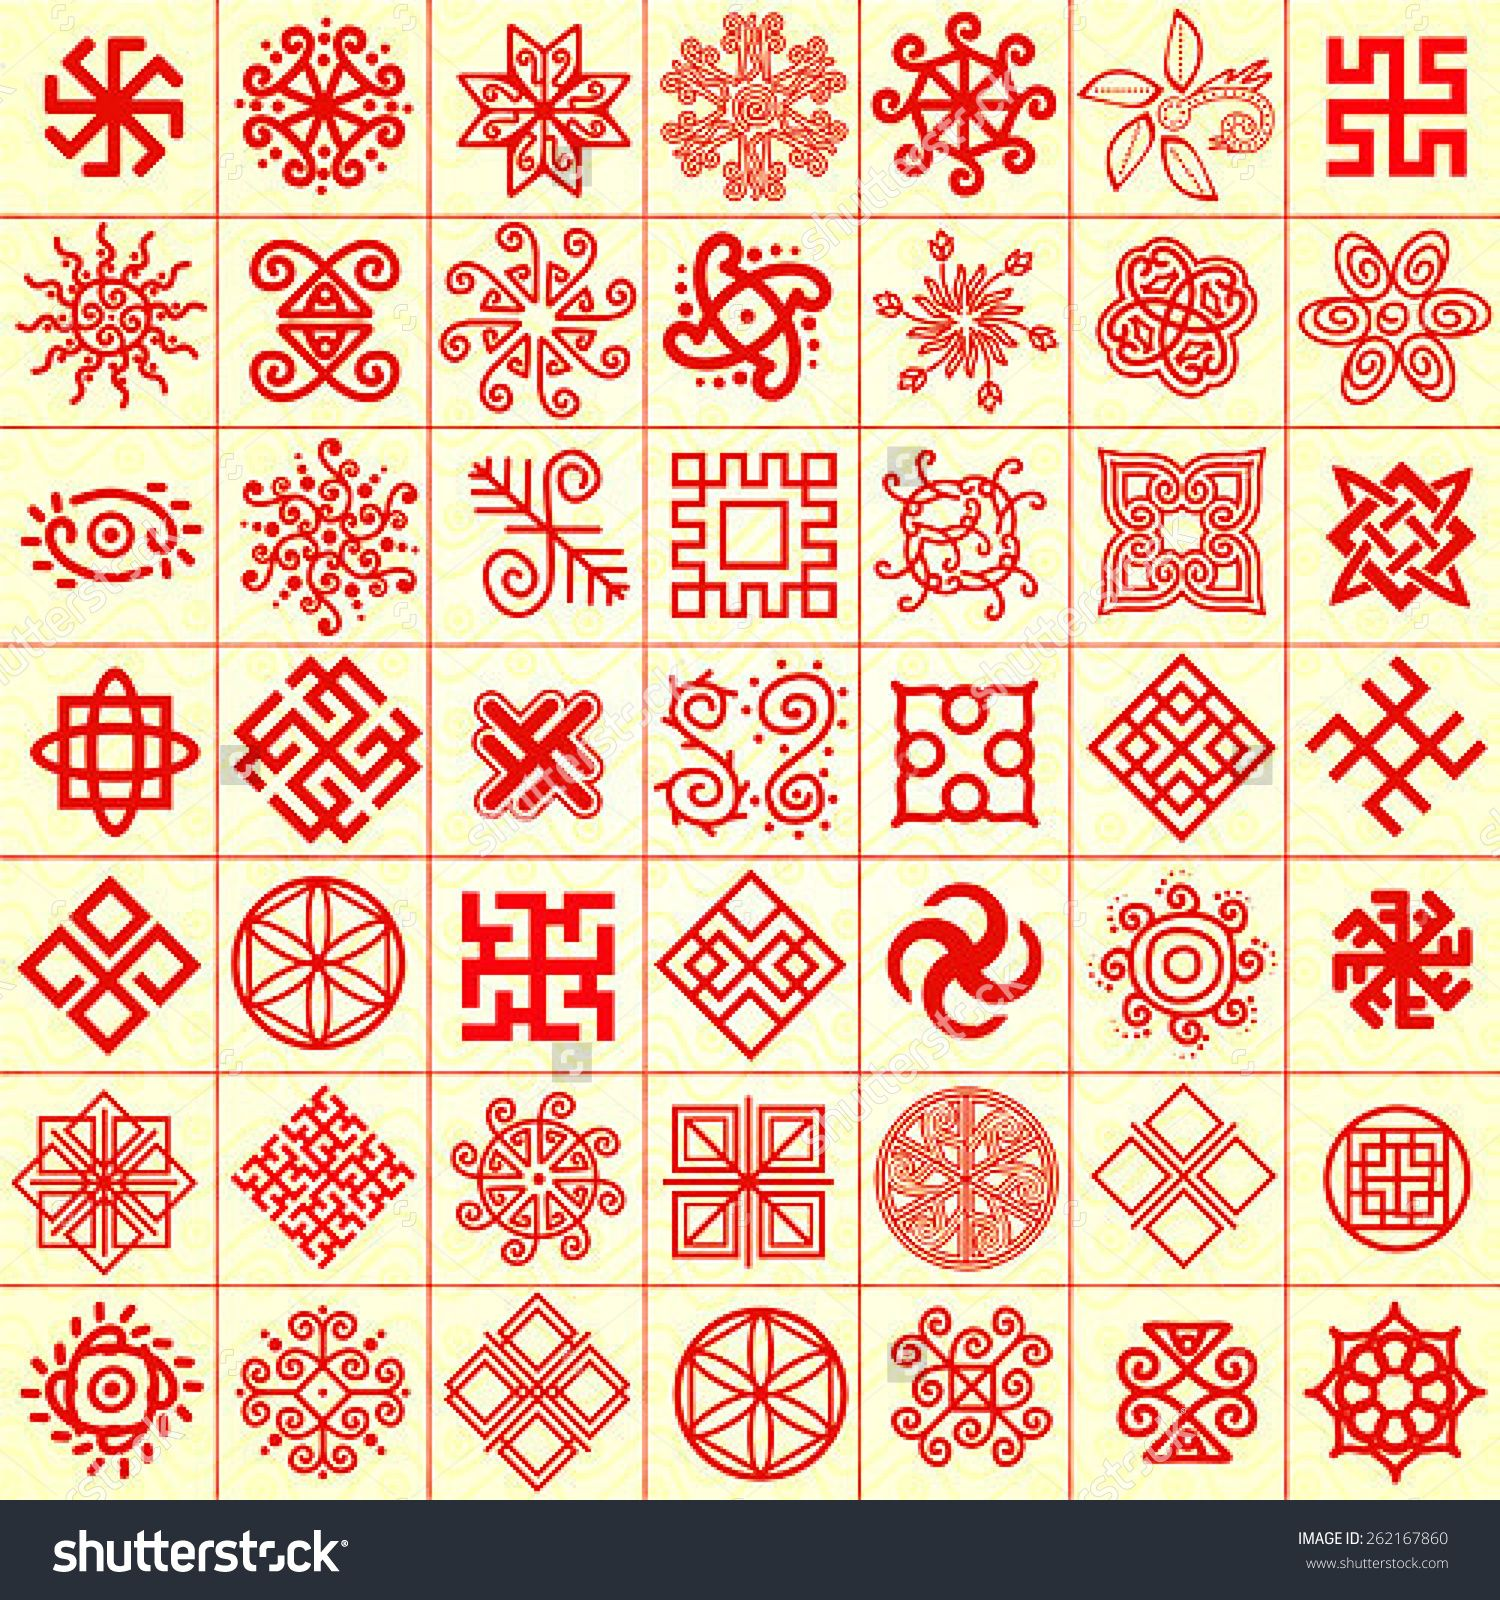 Symbols Ethnic Geometric Signs Set Set Of Icons With Slavic Pagan